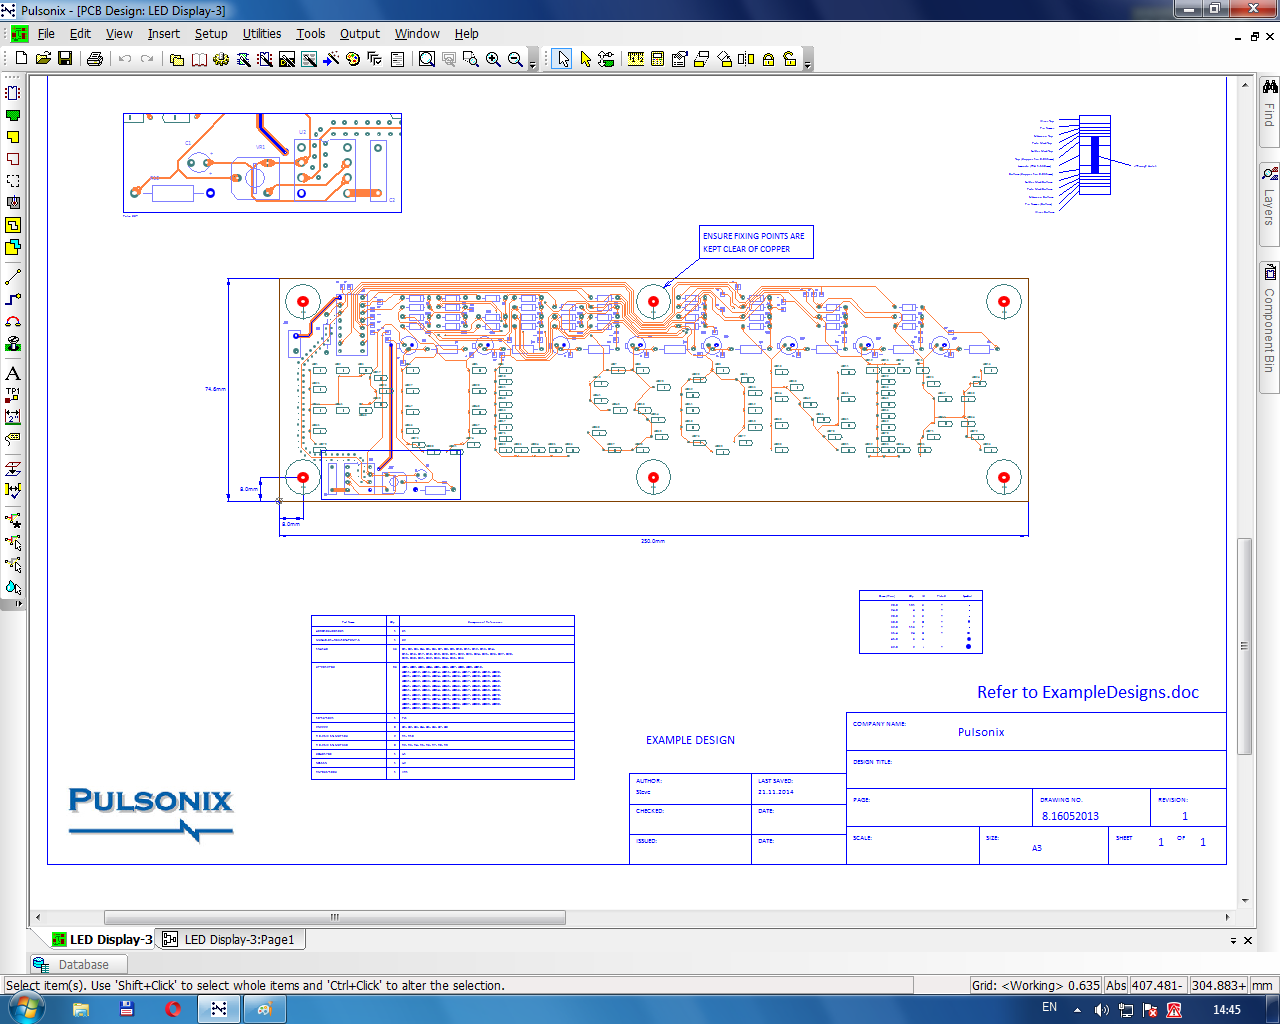 Working with Pulsonix 8.5 Build 5905 full license